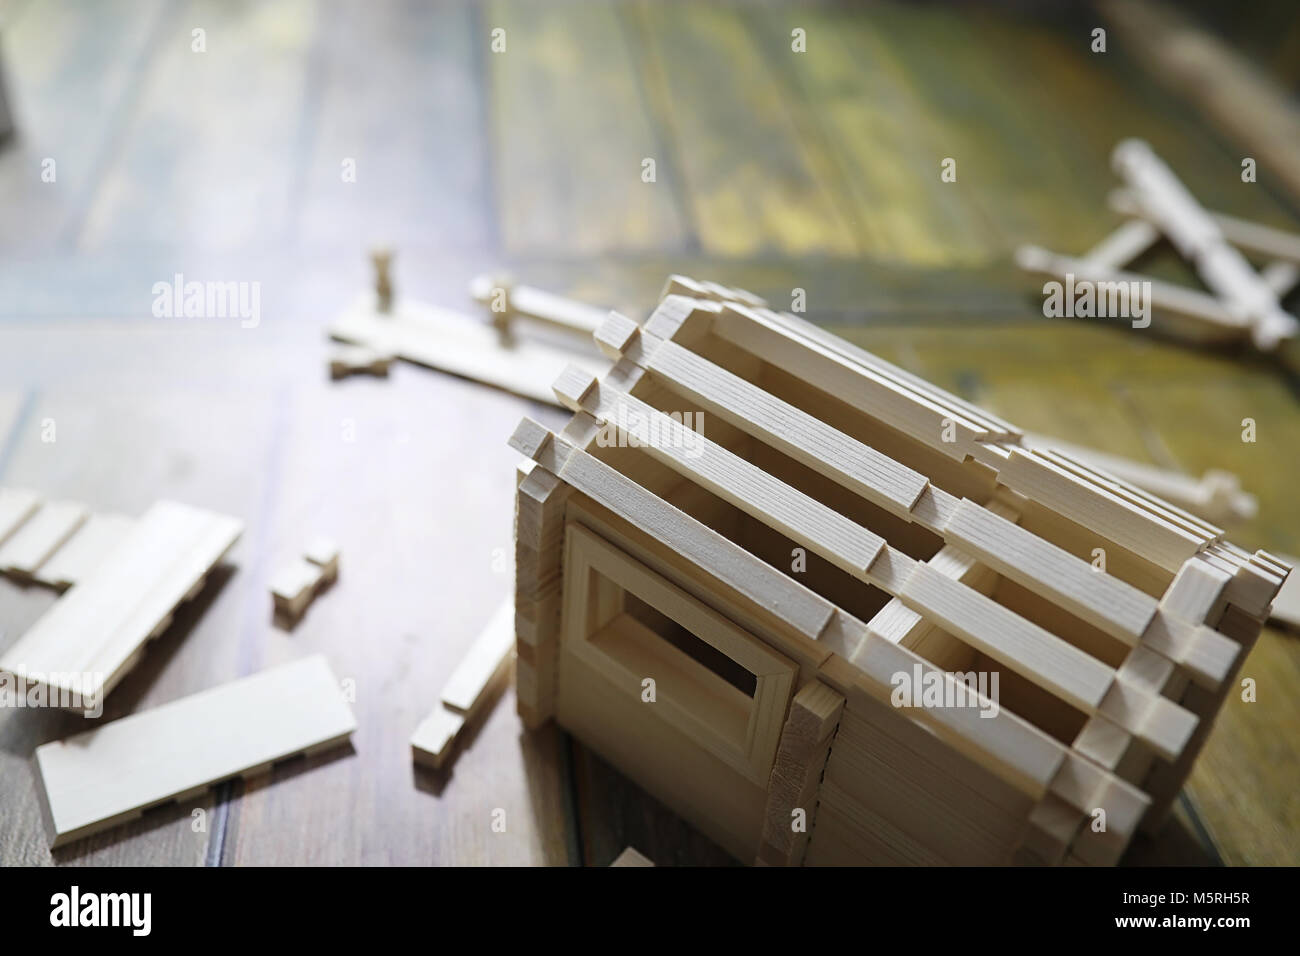 Toy wooden house. The constructor is made of natural wood for ch - Stock Image